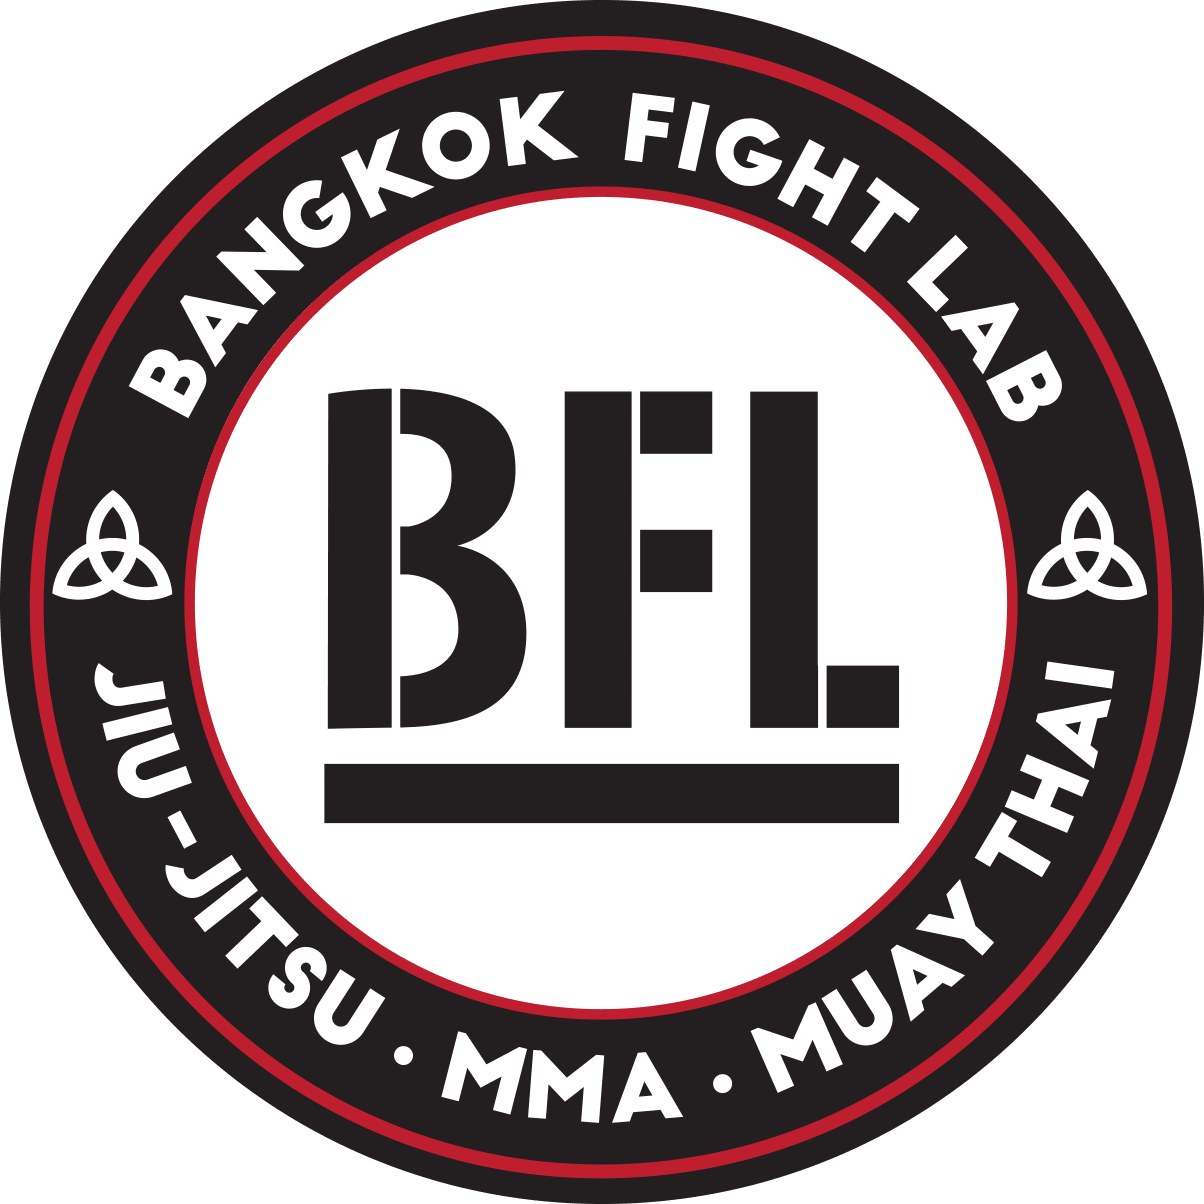 Bangkok Fight Lab